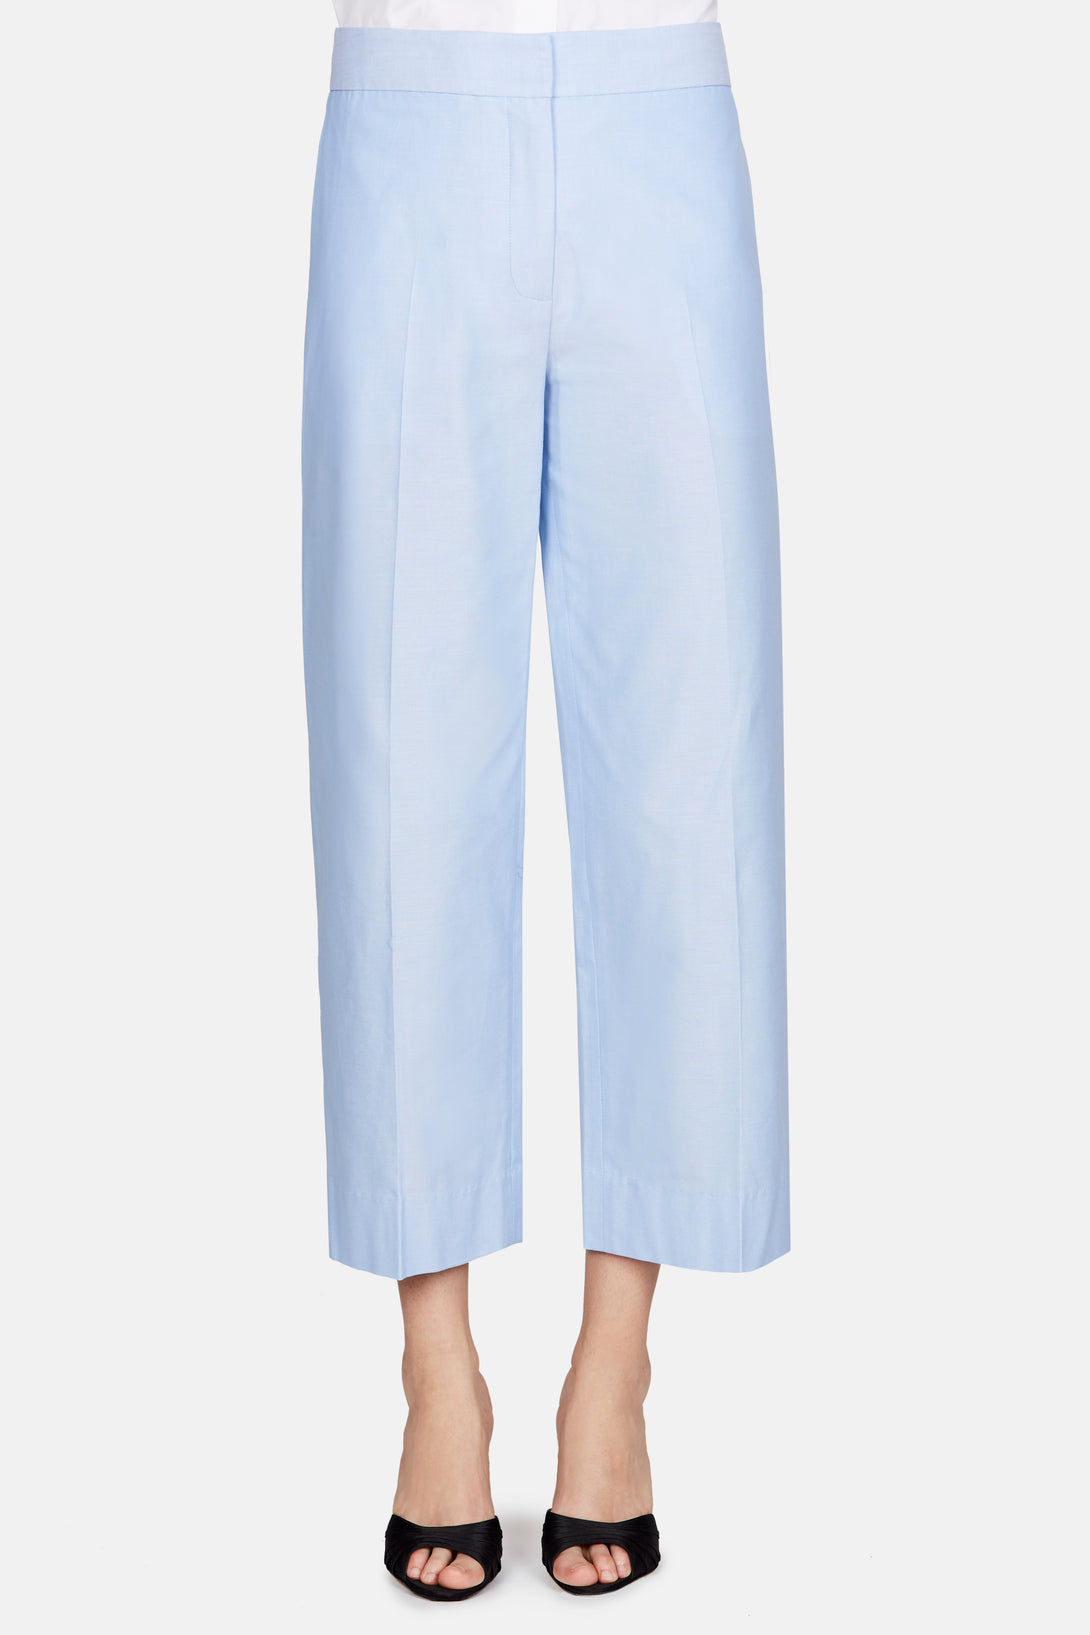 Trouser 45 Resort Trouser - Chambray Blue